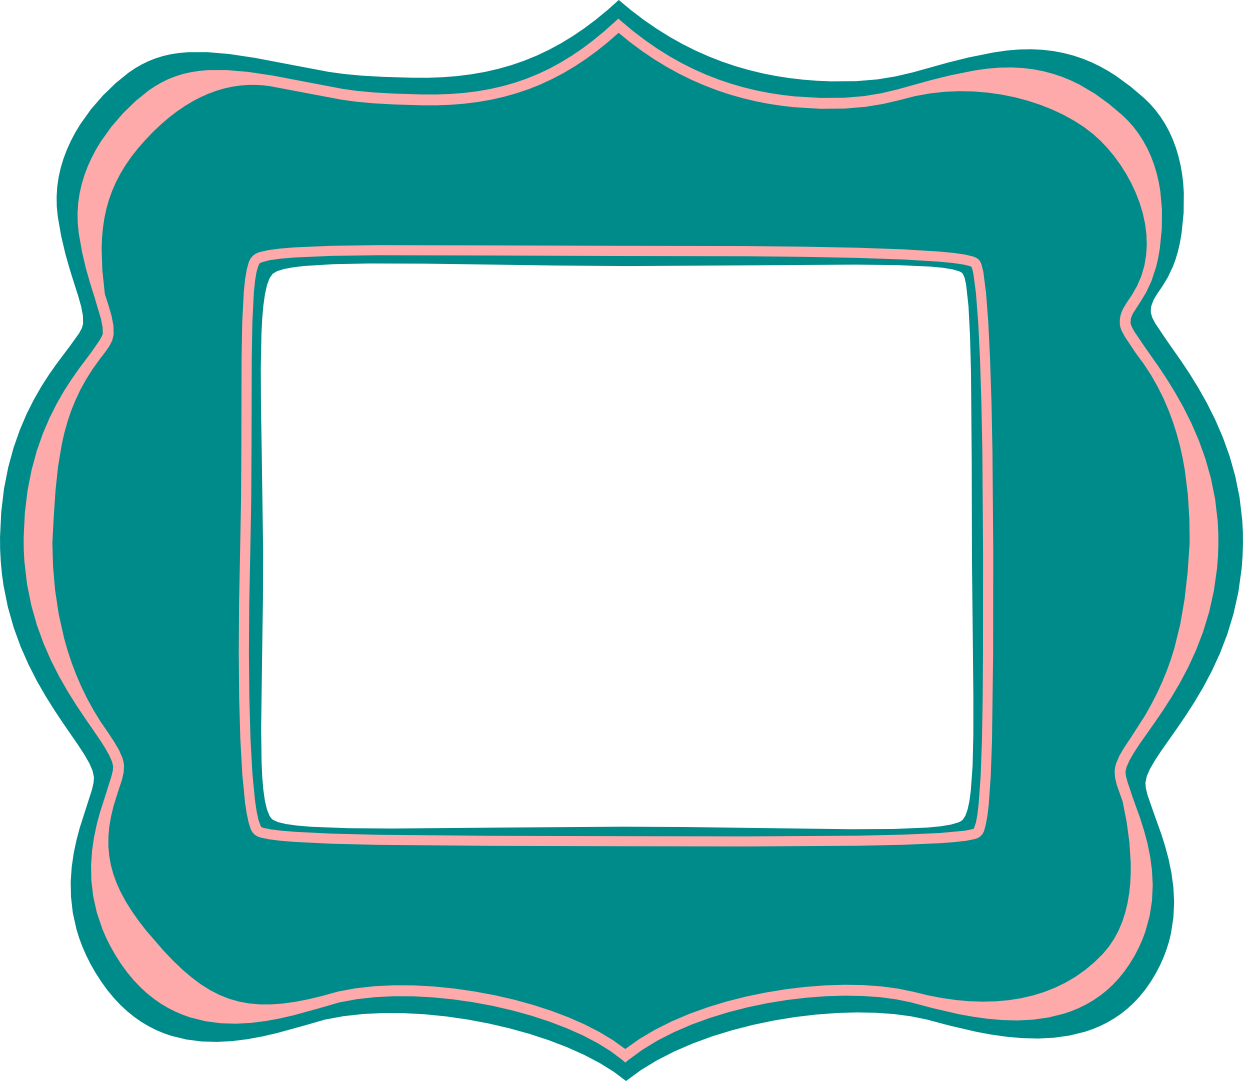 label frames png - photo #32